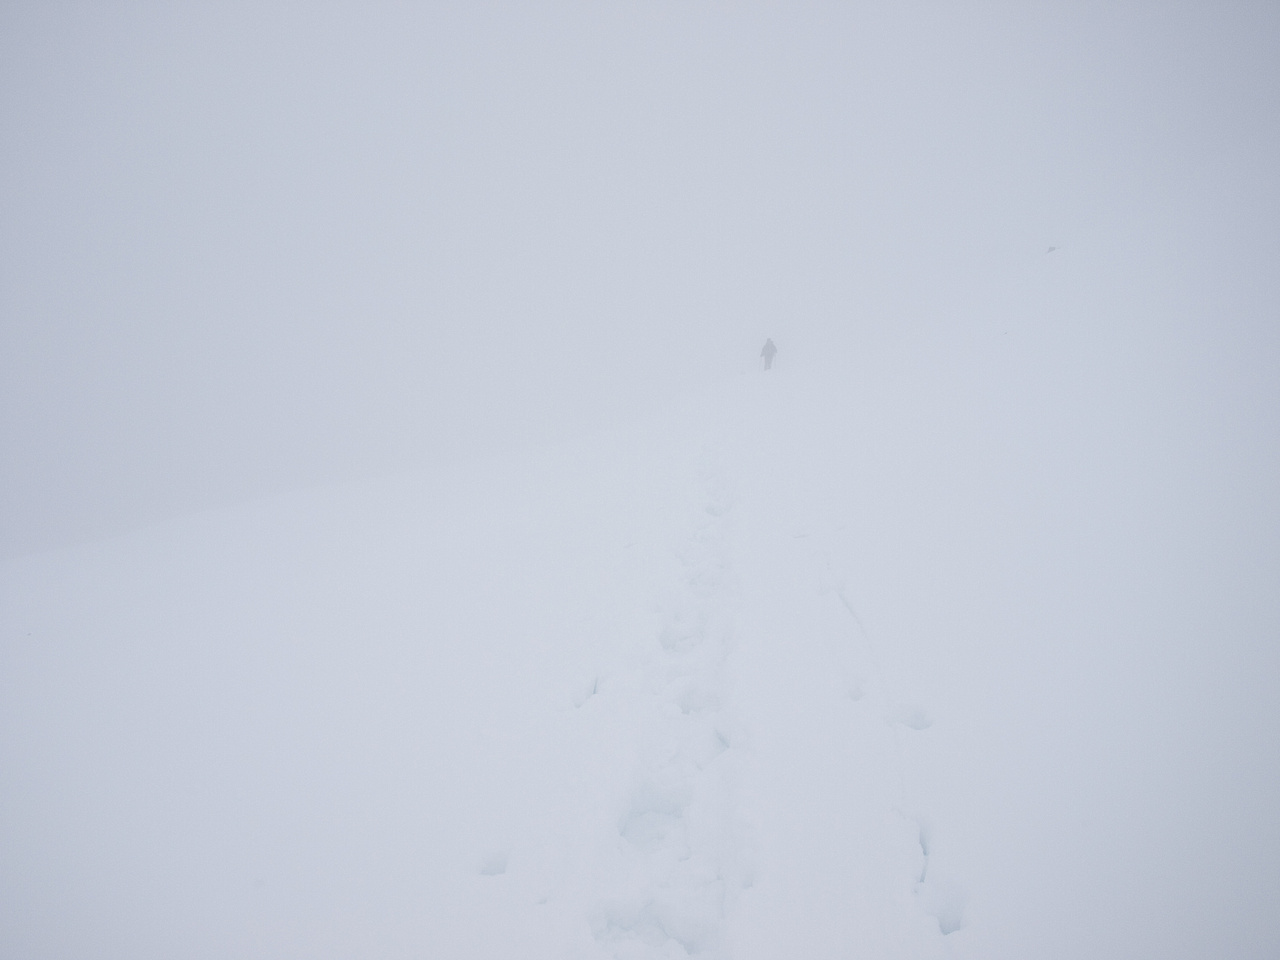 Can't see much - Wietse is just barely visible through the snow / cloud.